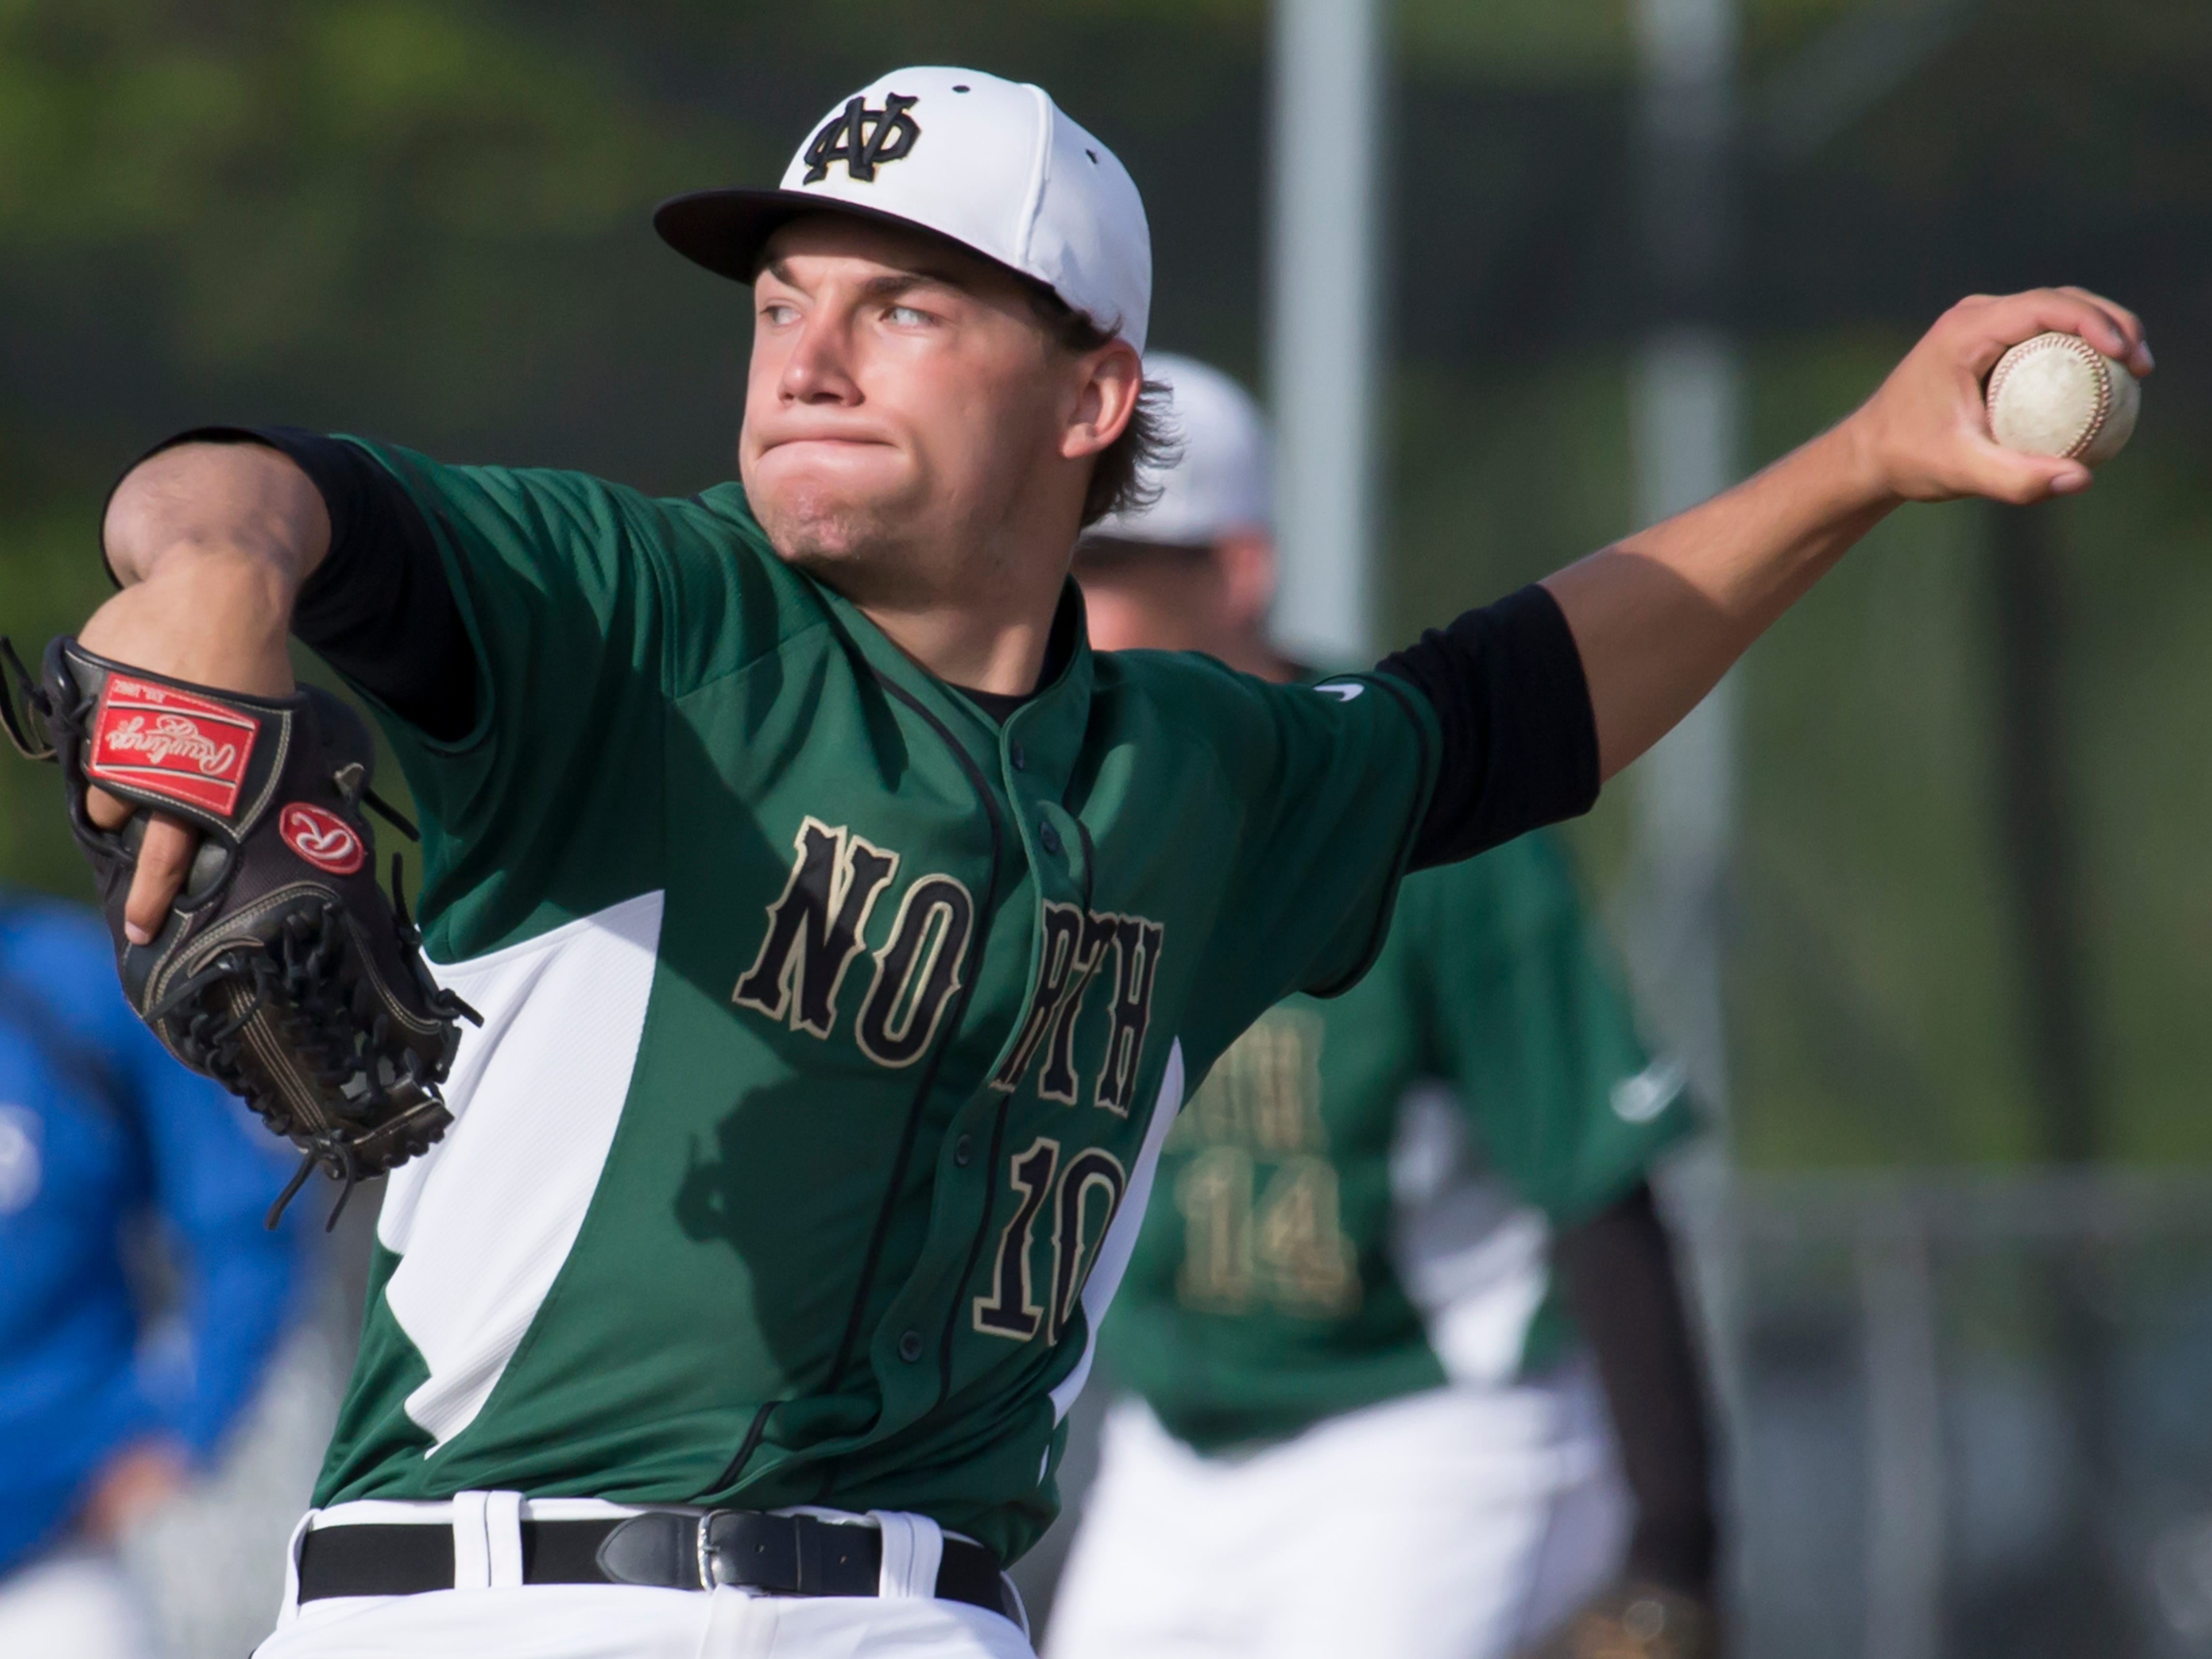 Oshkosh North's Alex Hintze pitched a no-hitter Tuesday, striking out 12 with five walks.